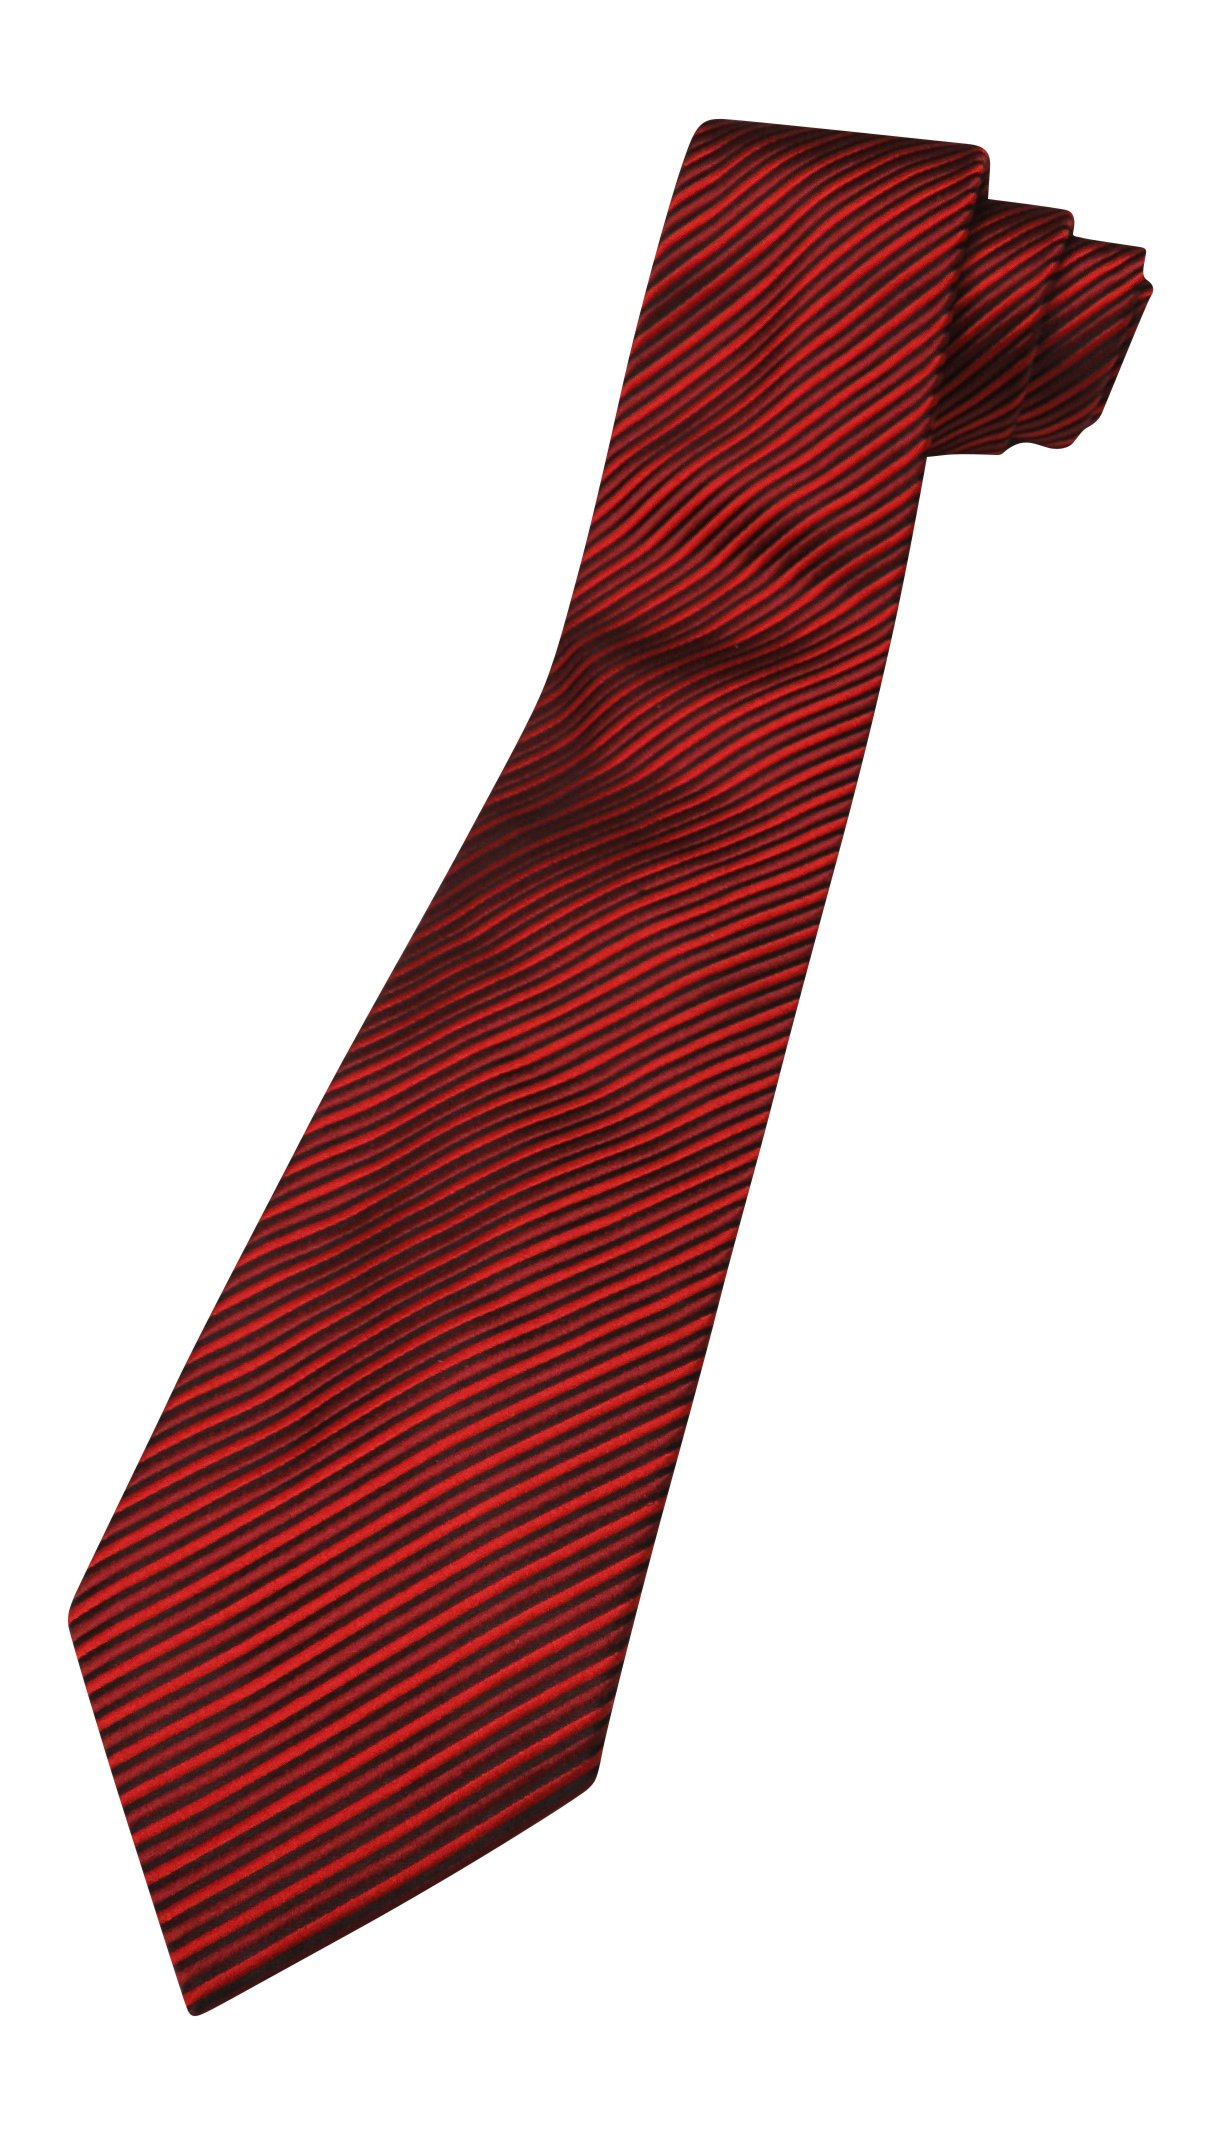 Donald Trump Neck Tie Red And Black